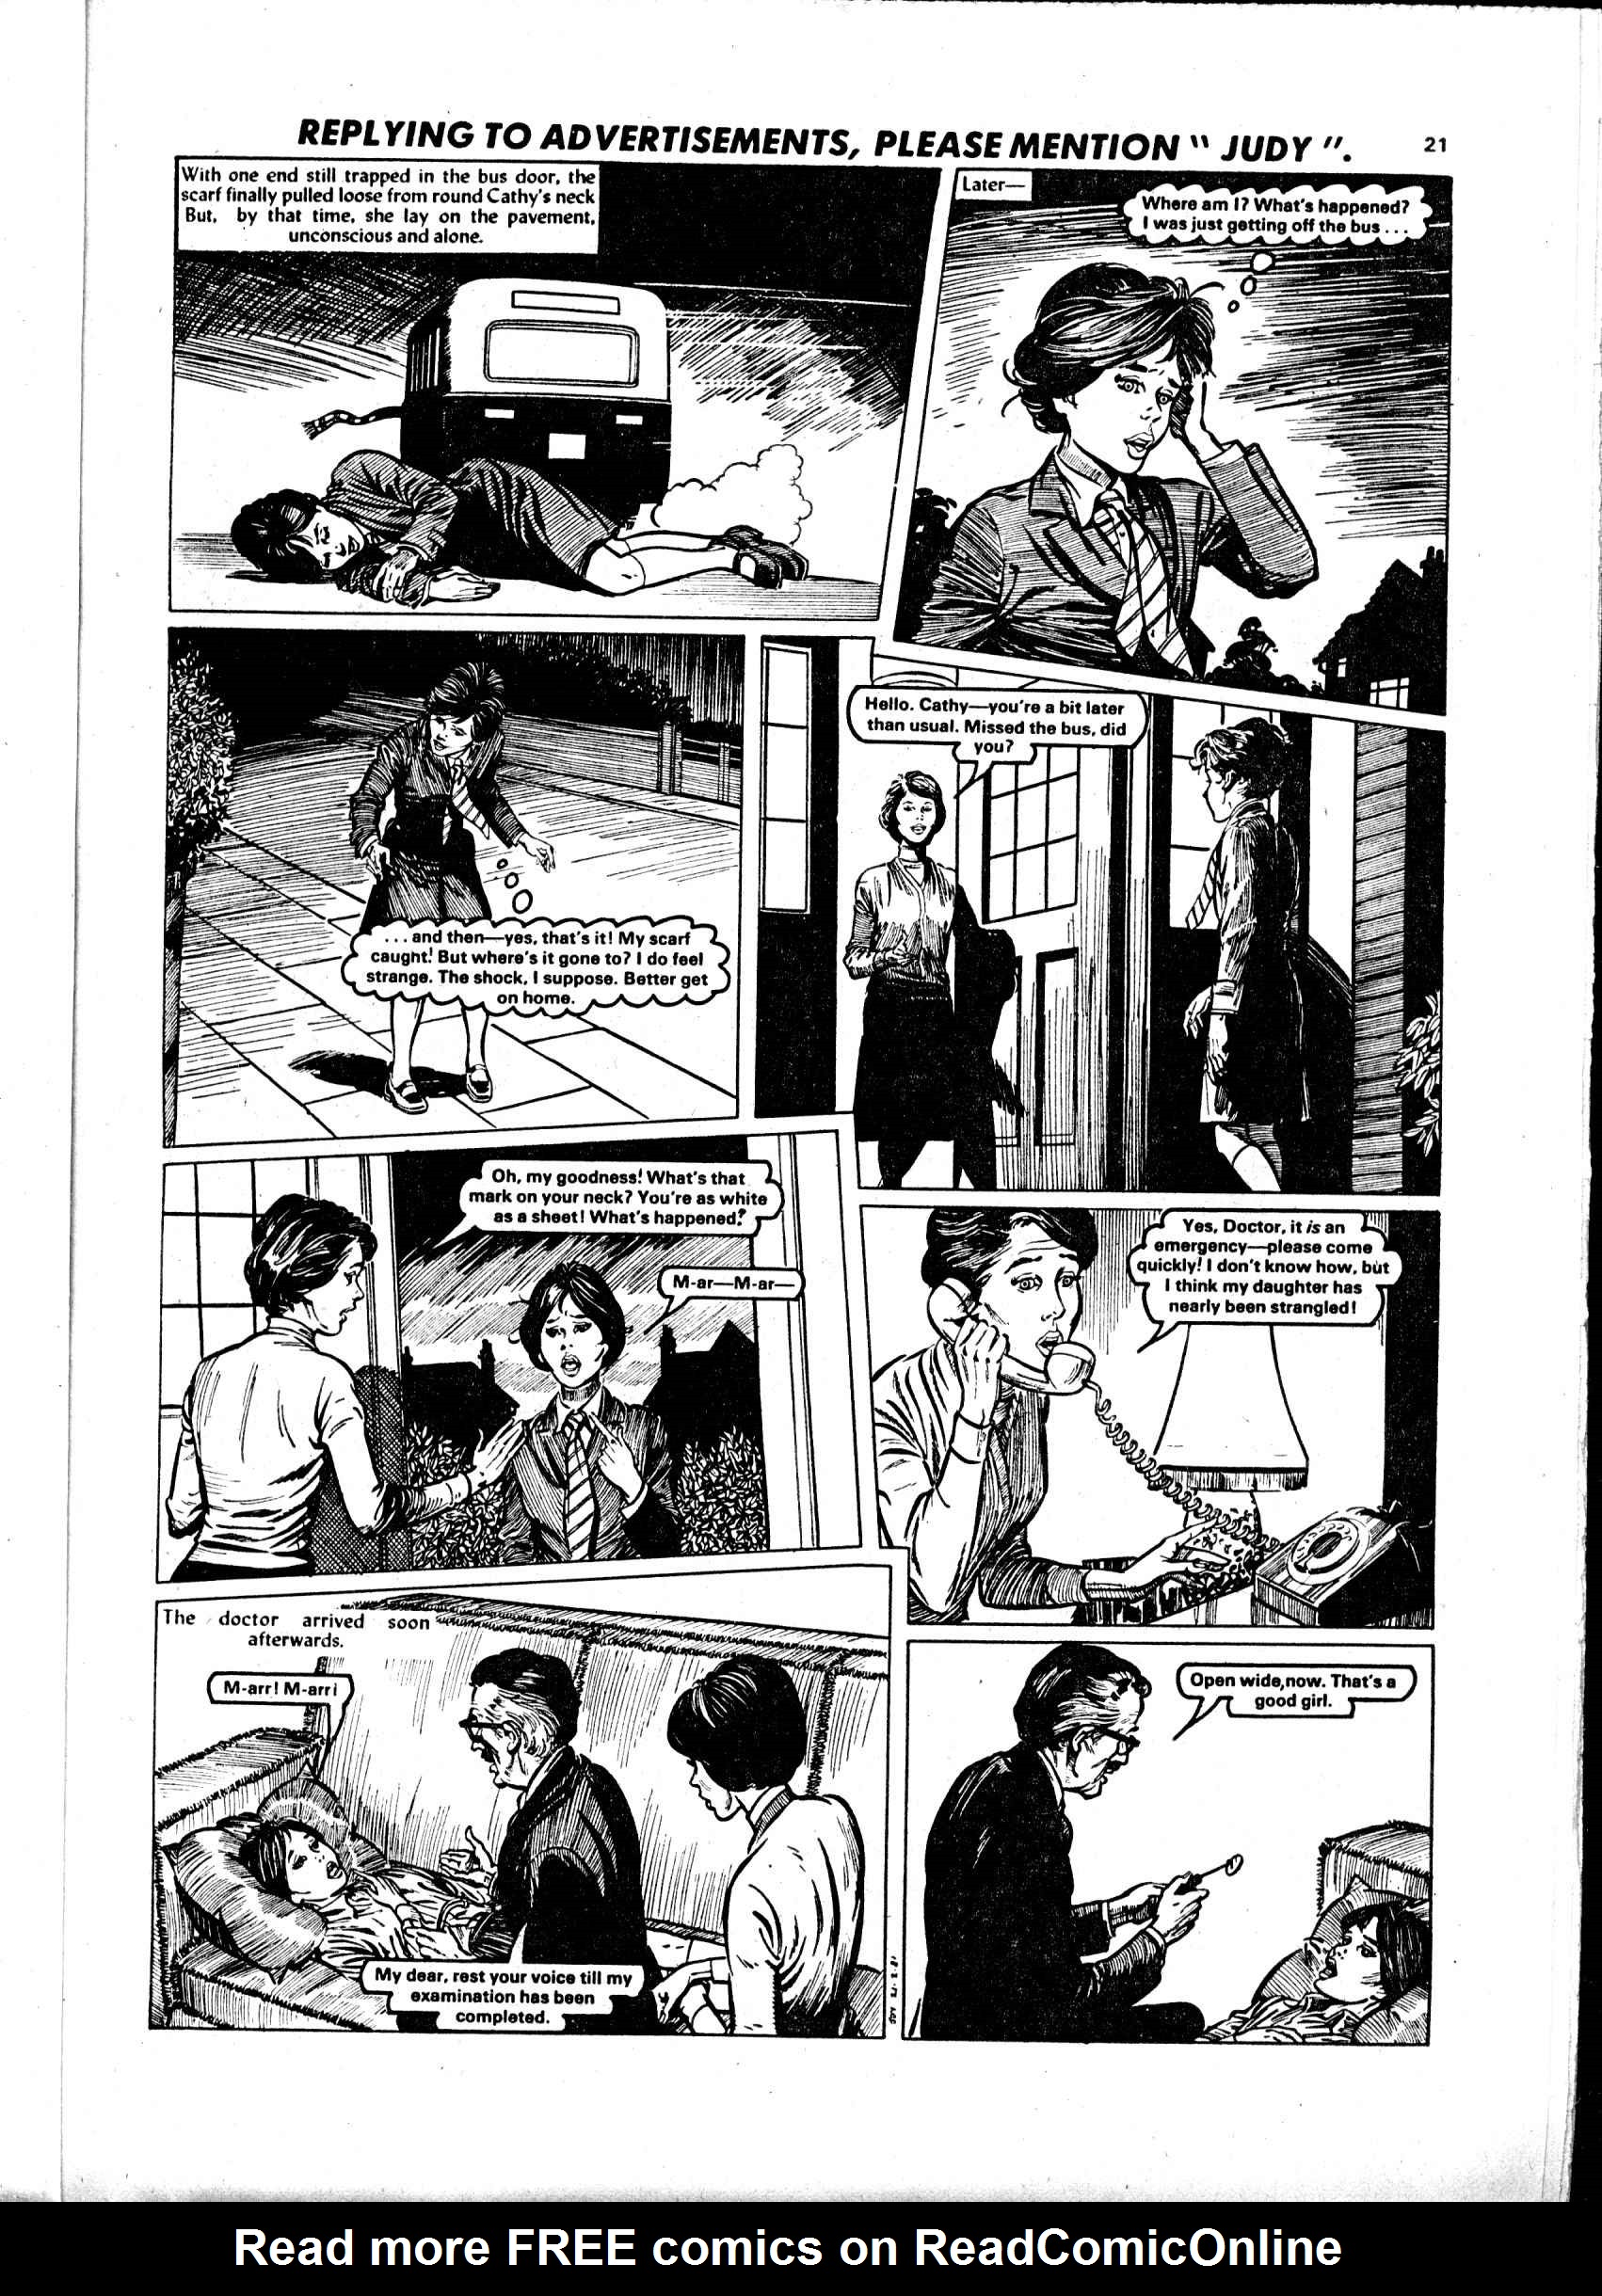 Read online Judy comic -  Issue #1102 - 21